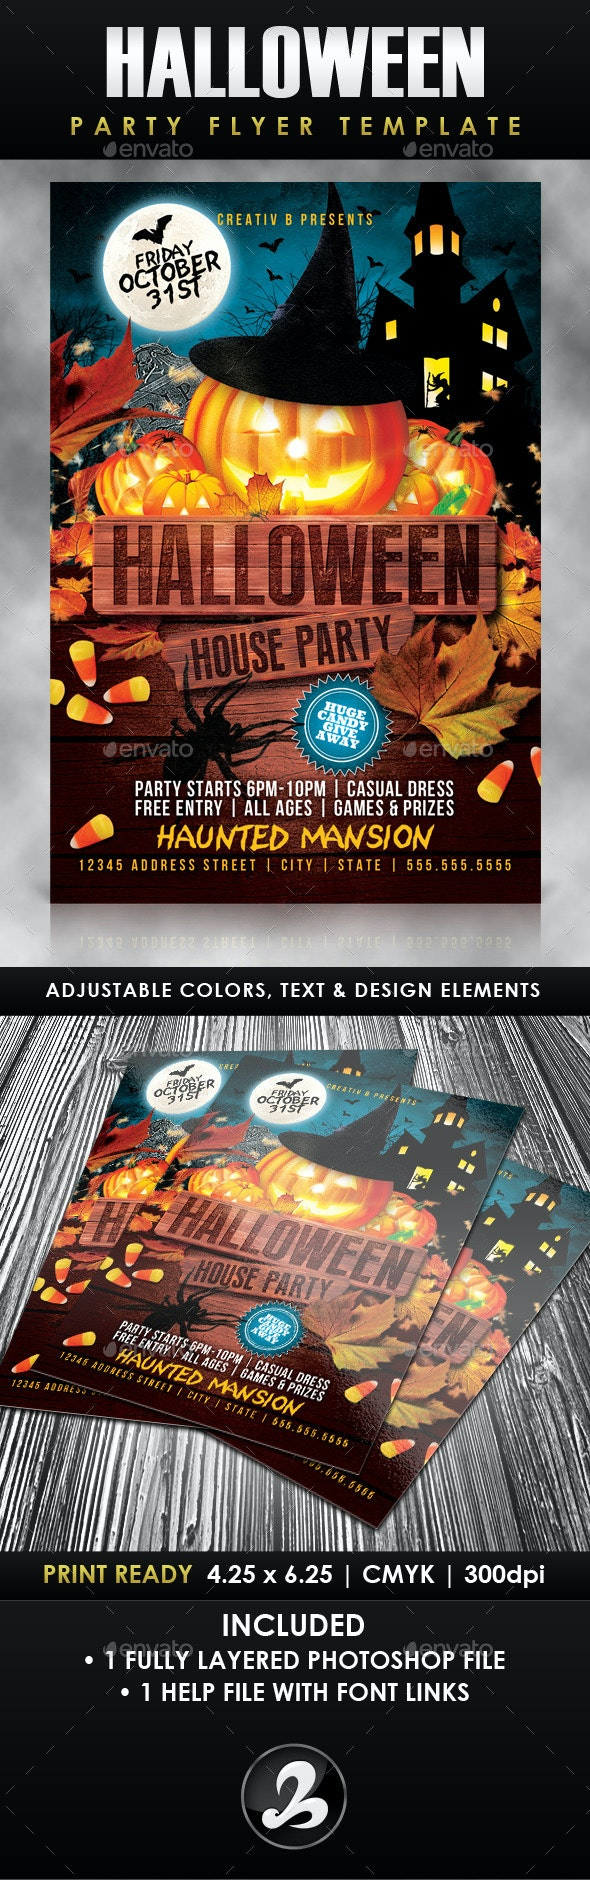 Halloween House Party Flyer Template - Events Flyers